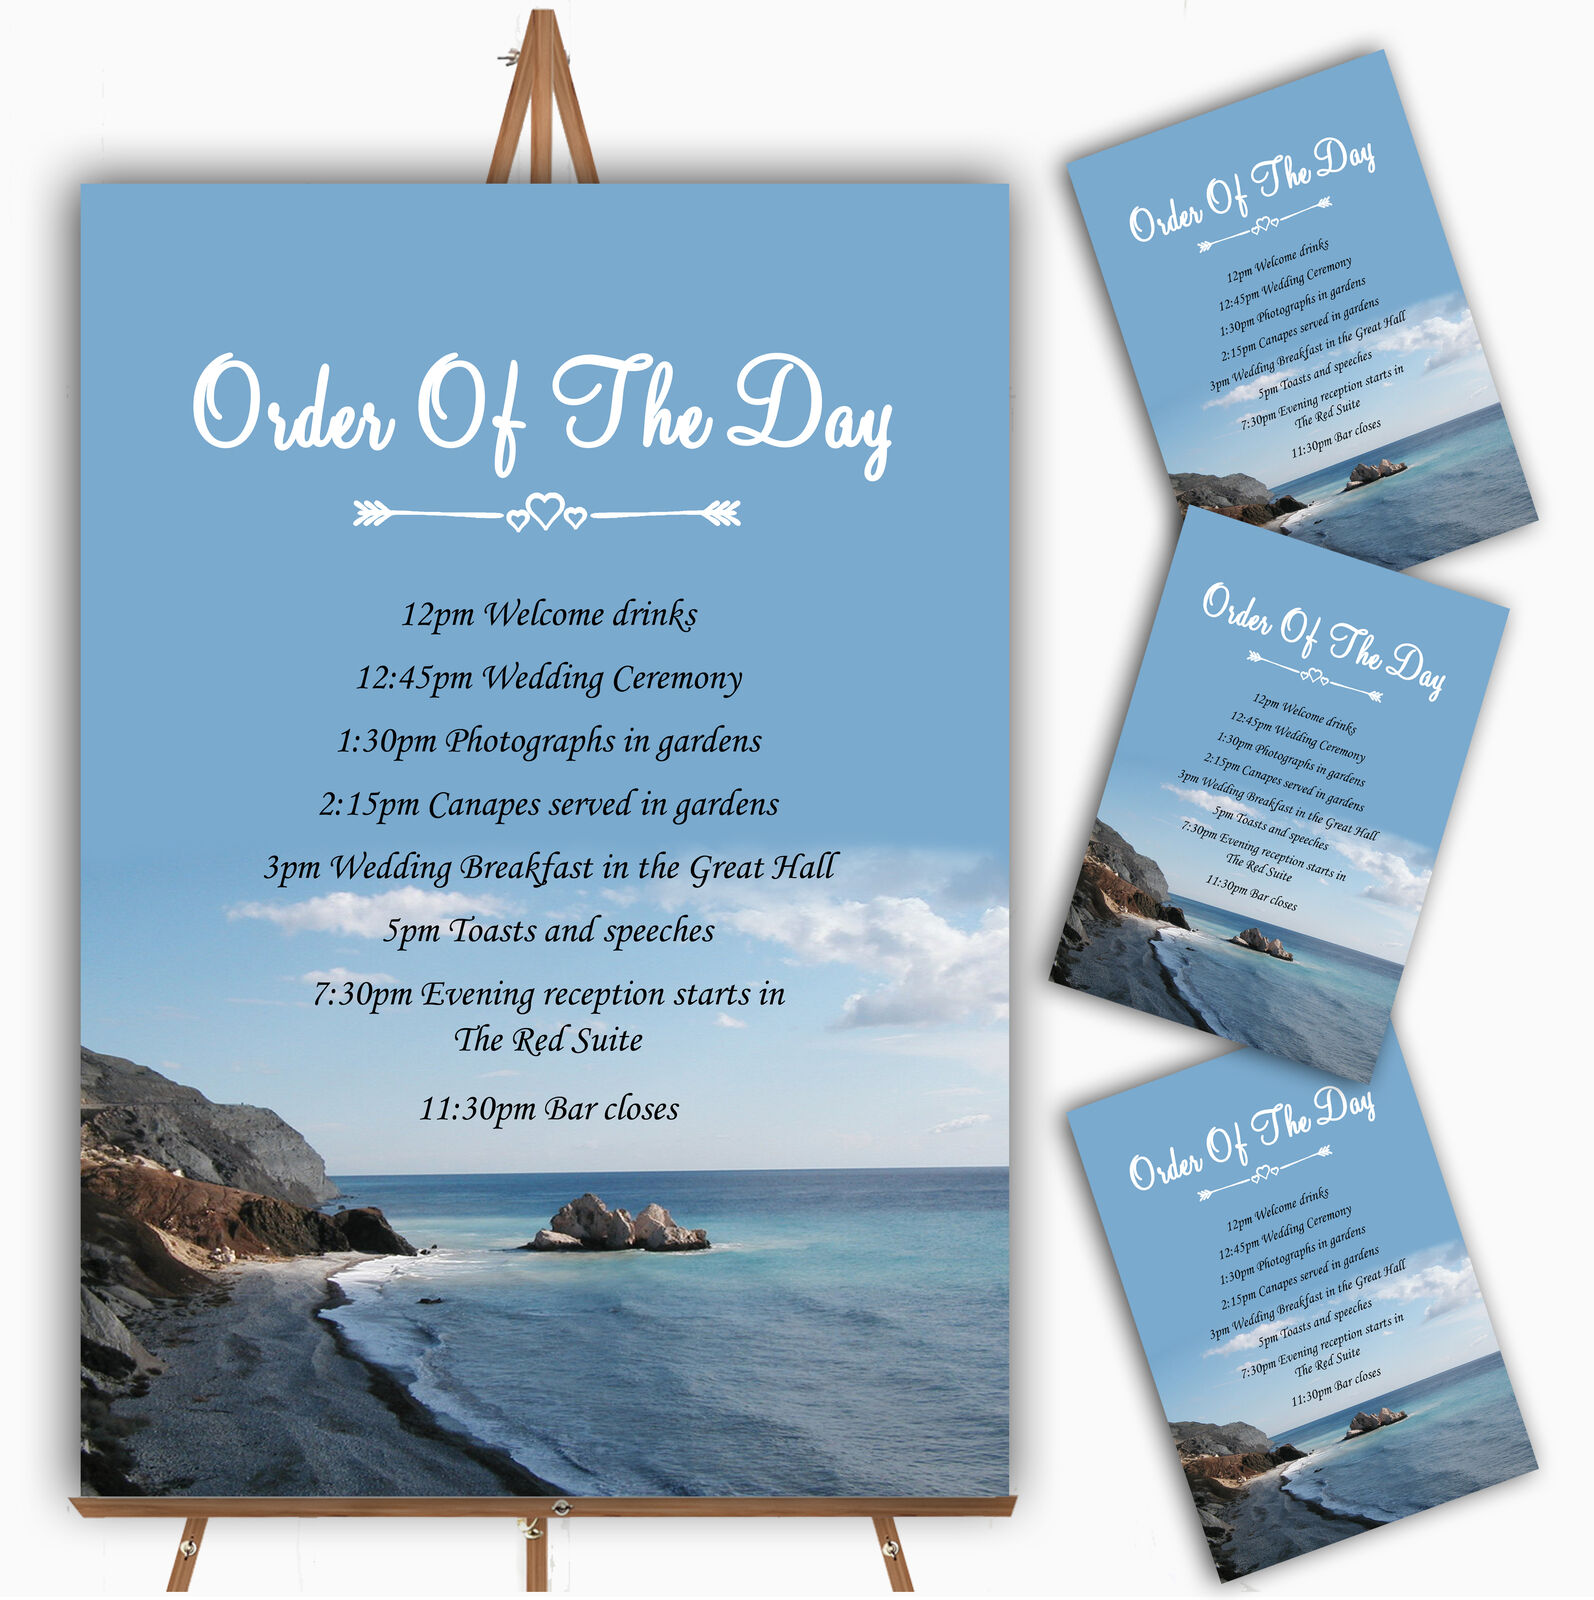 View Of A Cyprus Beach Abroad Personalised Wedding Order Of The Day Cards